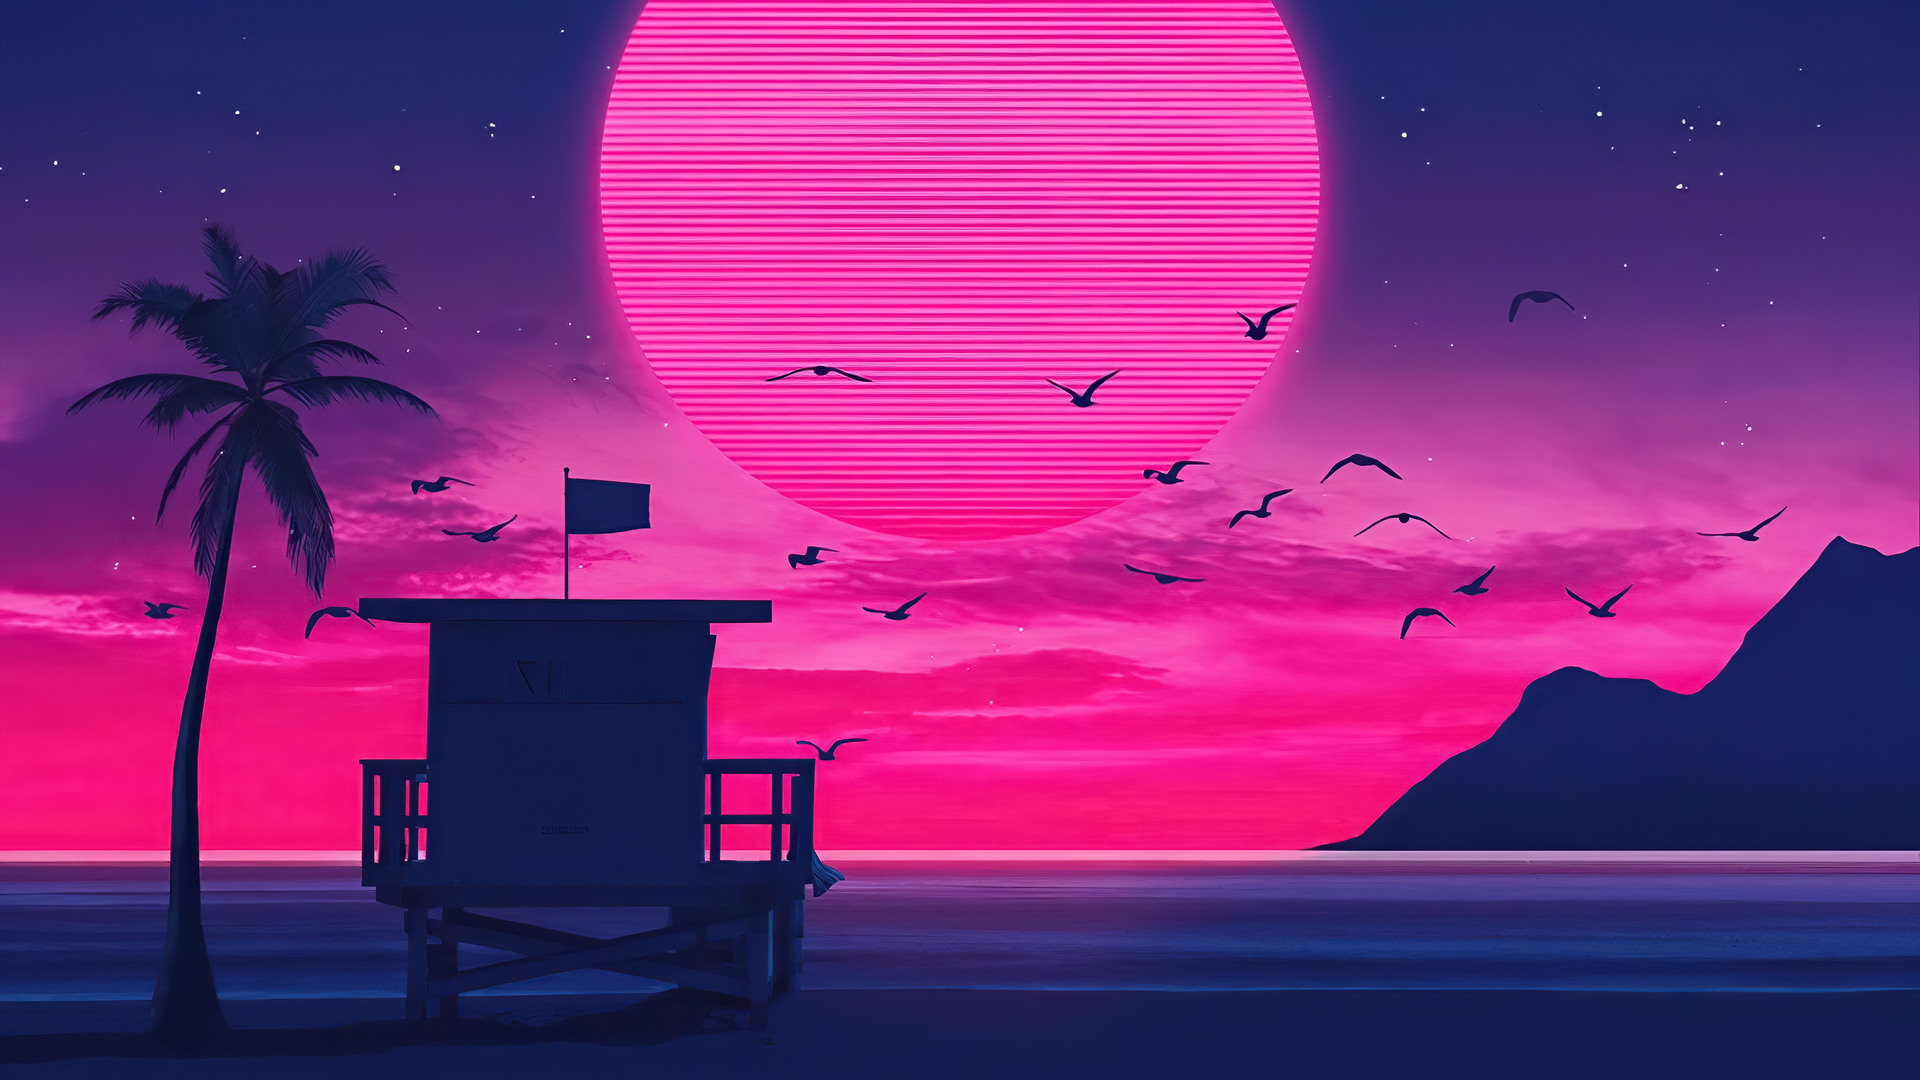 Beach Retro Wave Wallpaper Hd Artist 4k Wallpapers Images Photos And Background